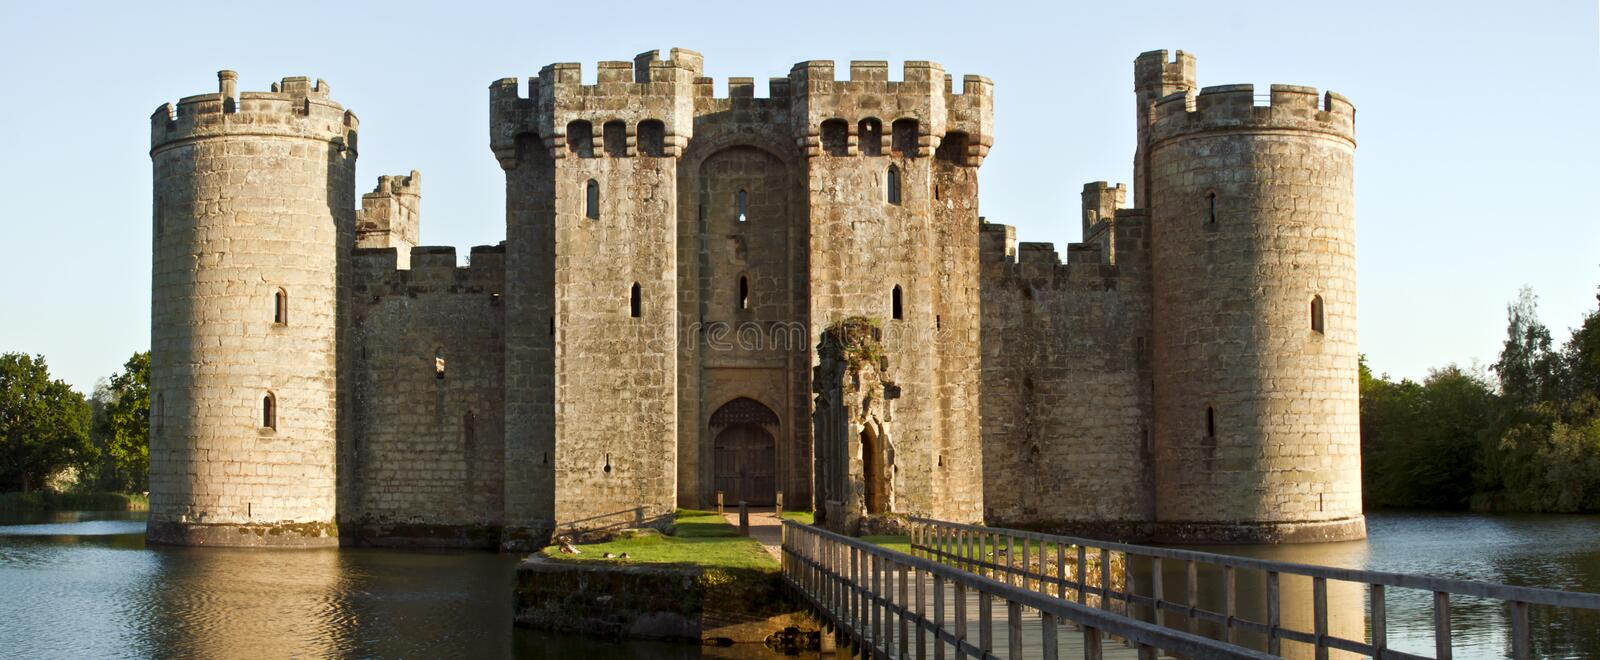 Historic Bodiam Castle and moat in East Sussex, England stock images